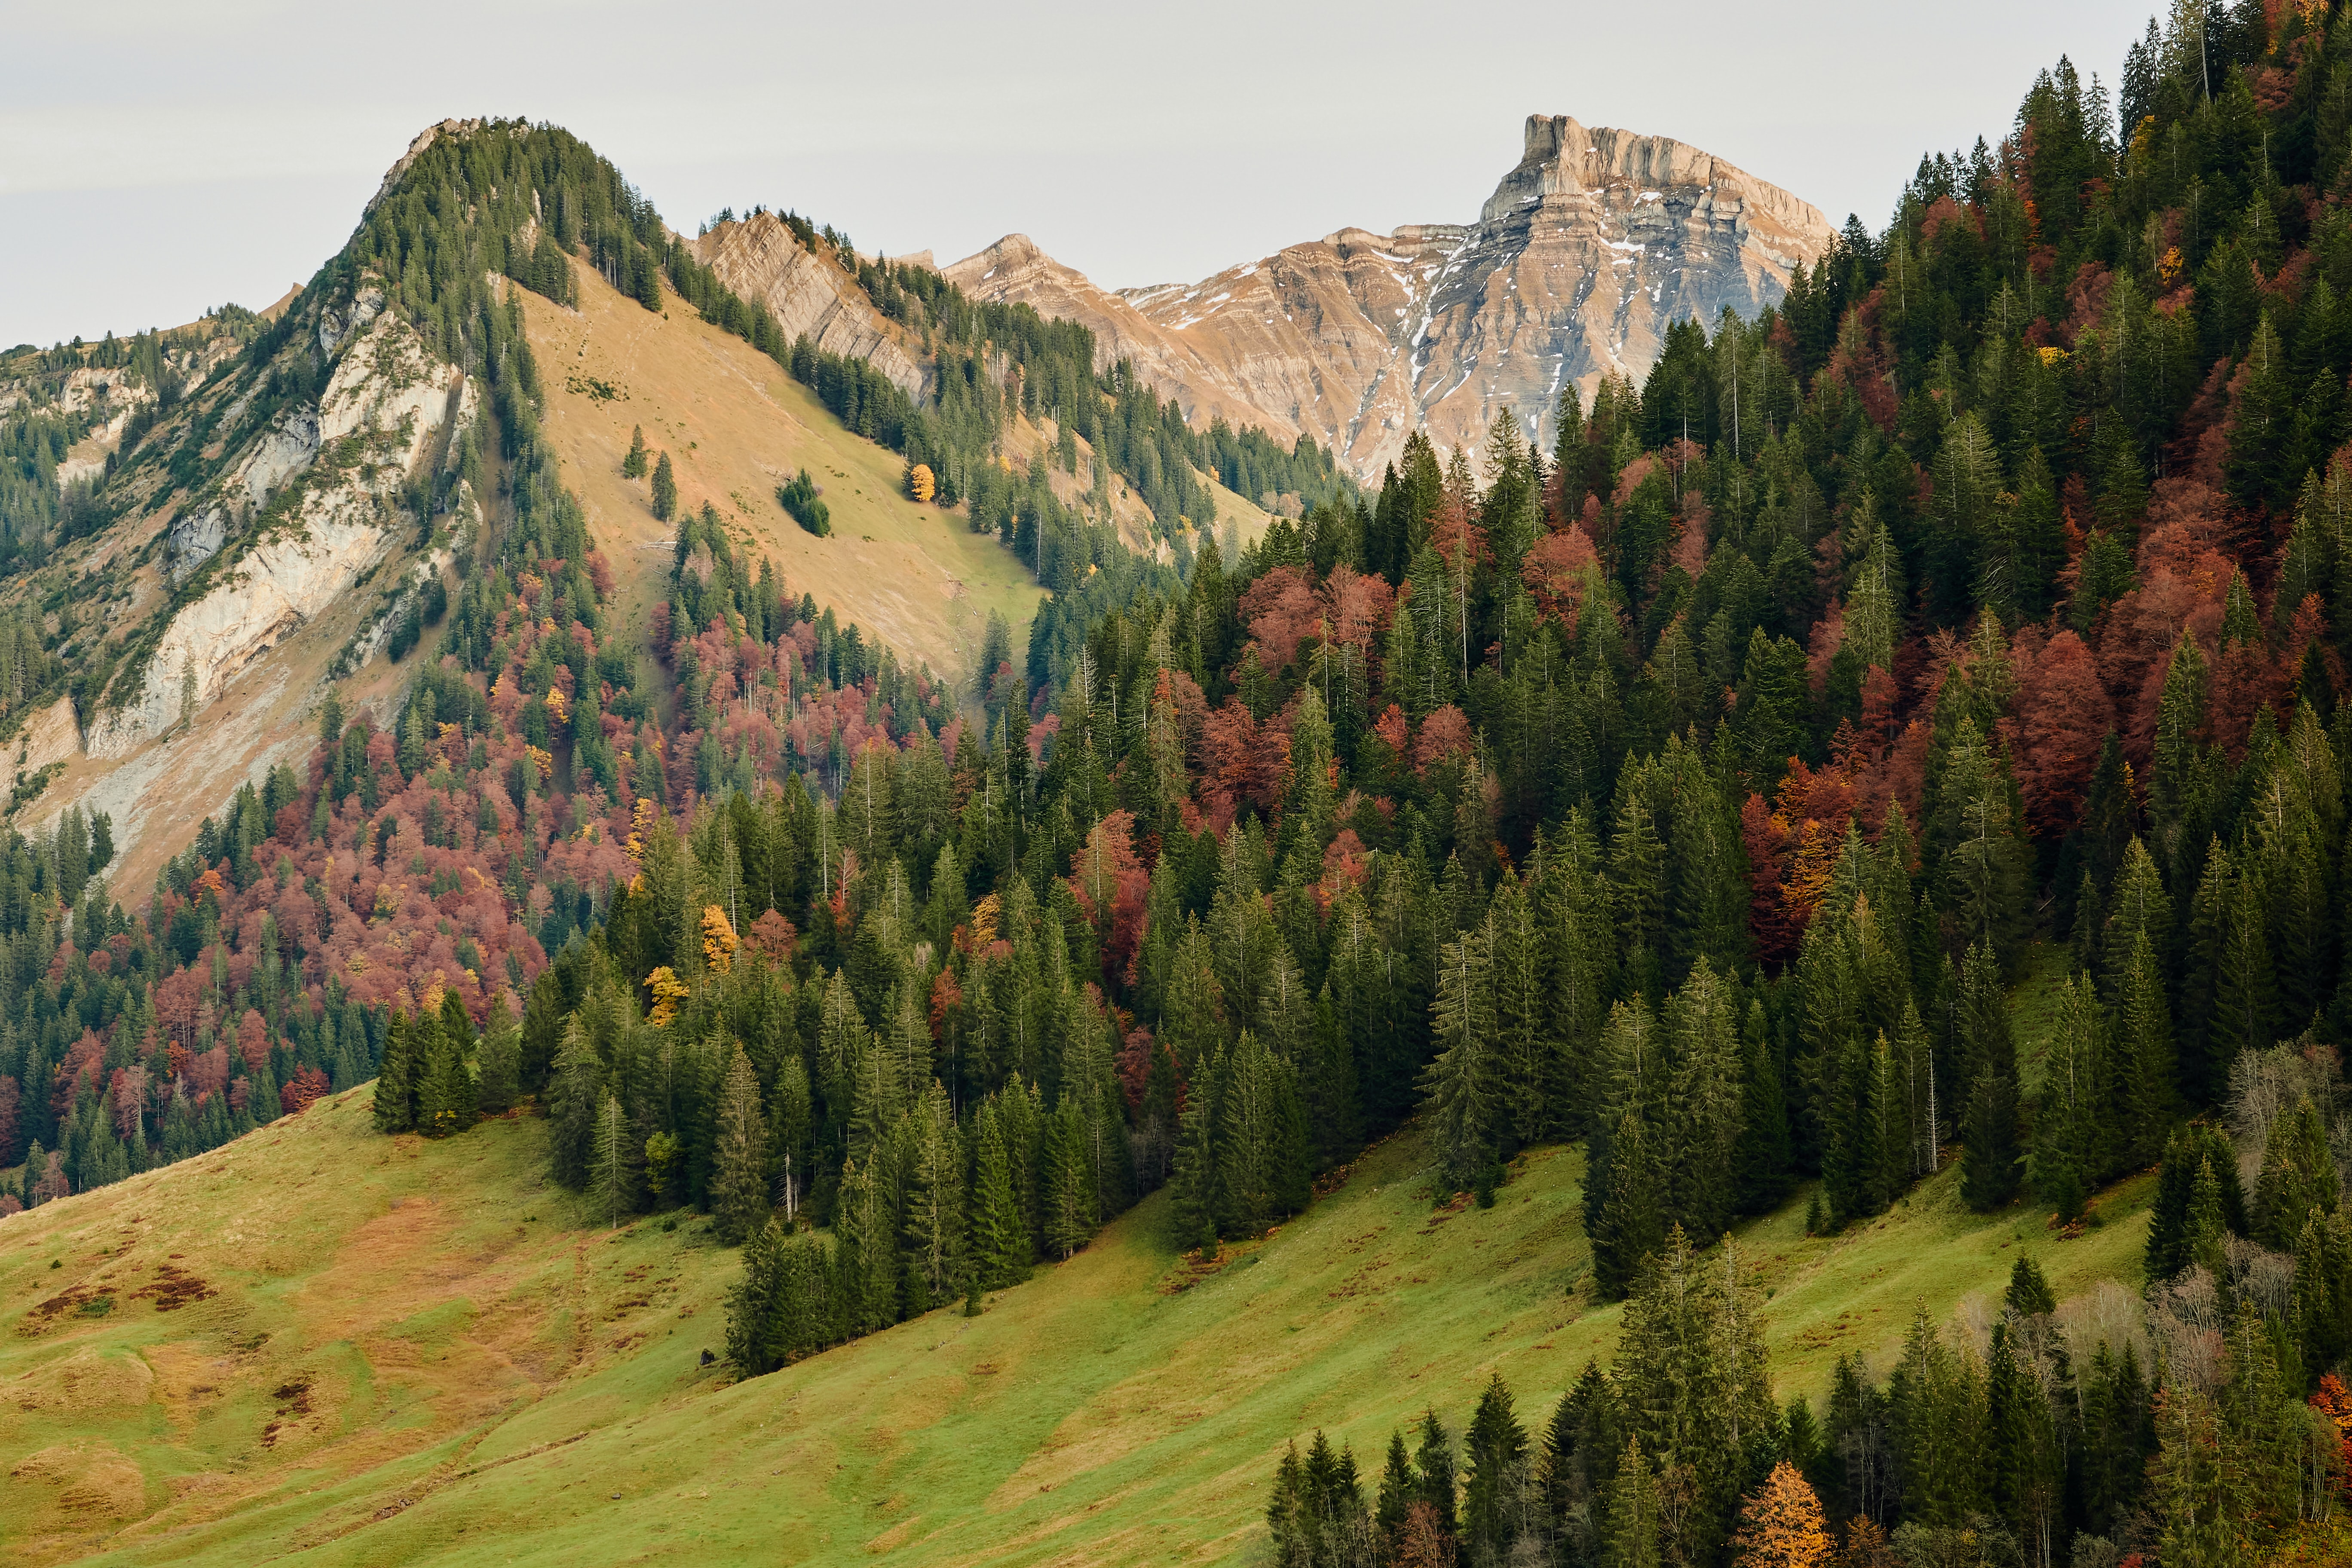 127957 download wallpaper Nature, Trees, Mountains, Autumn, Forest, Slope screensavers and pictures for free